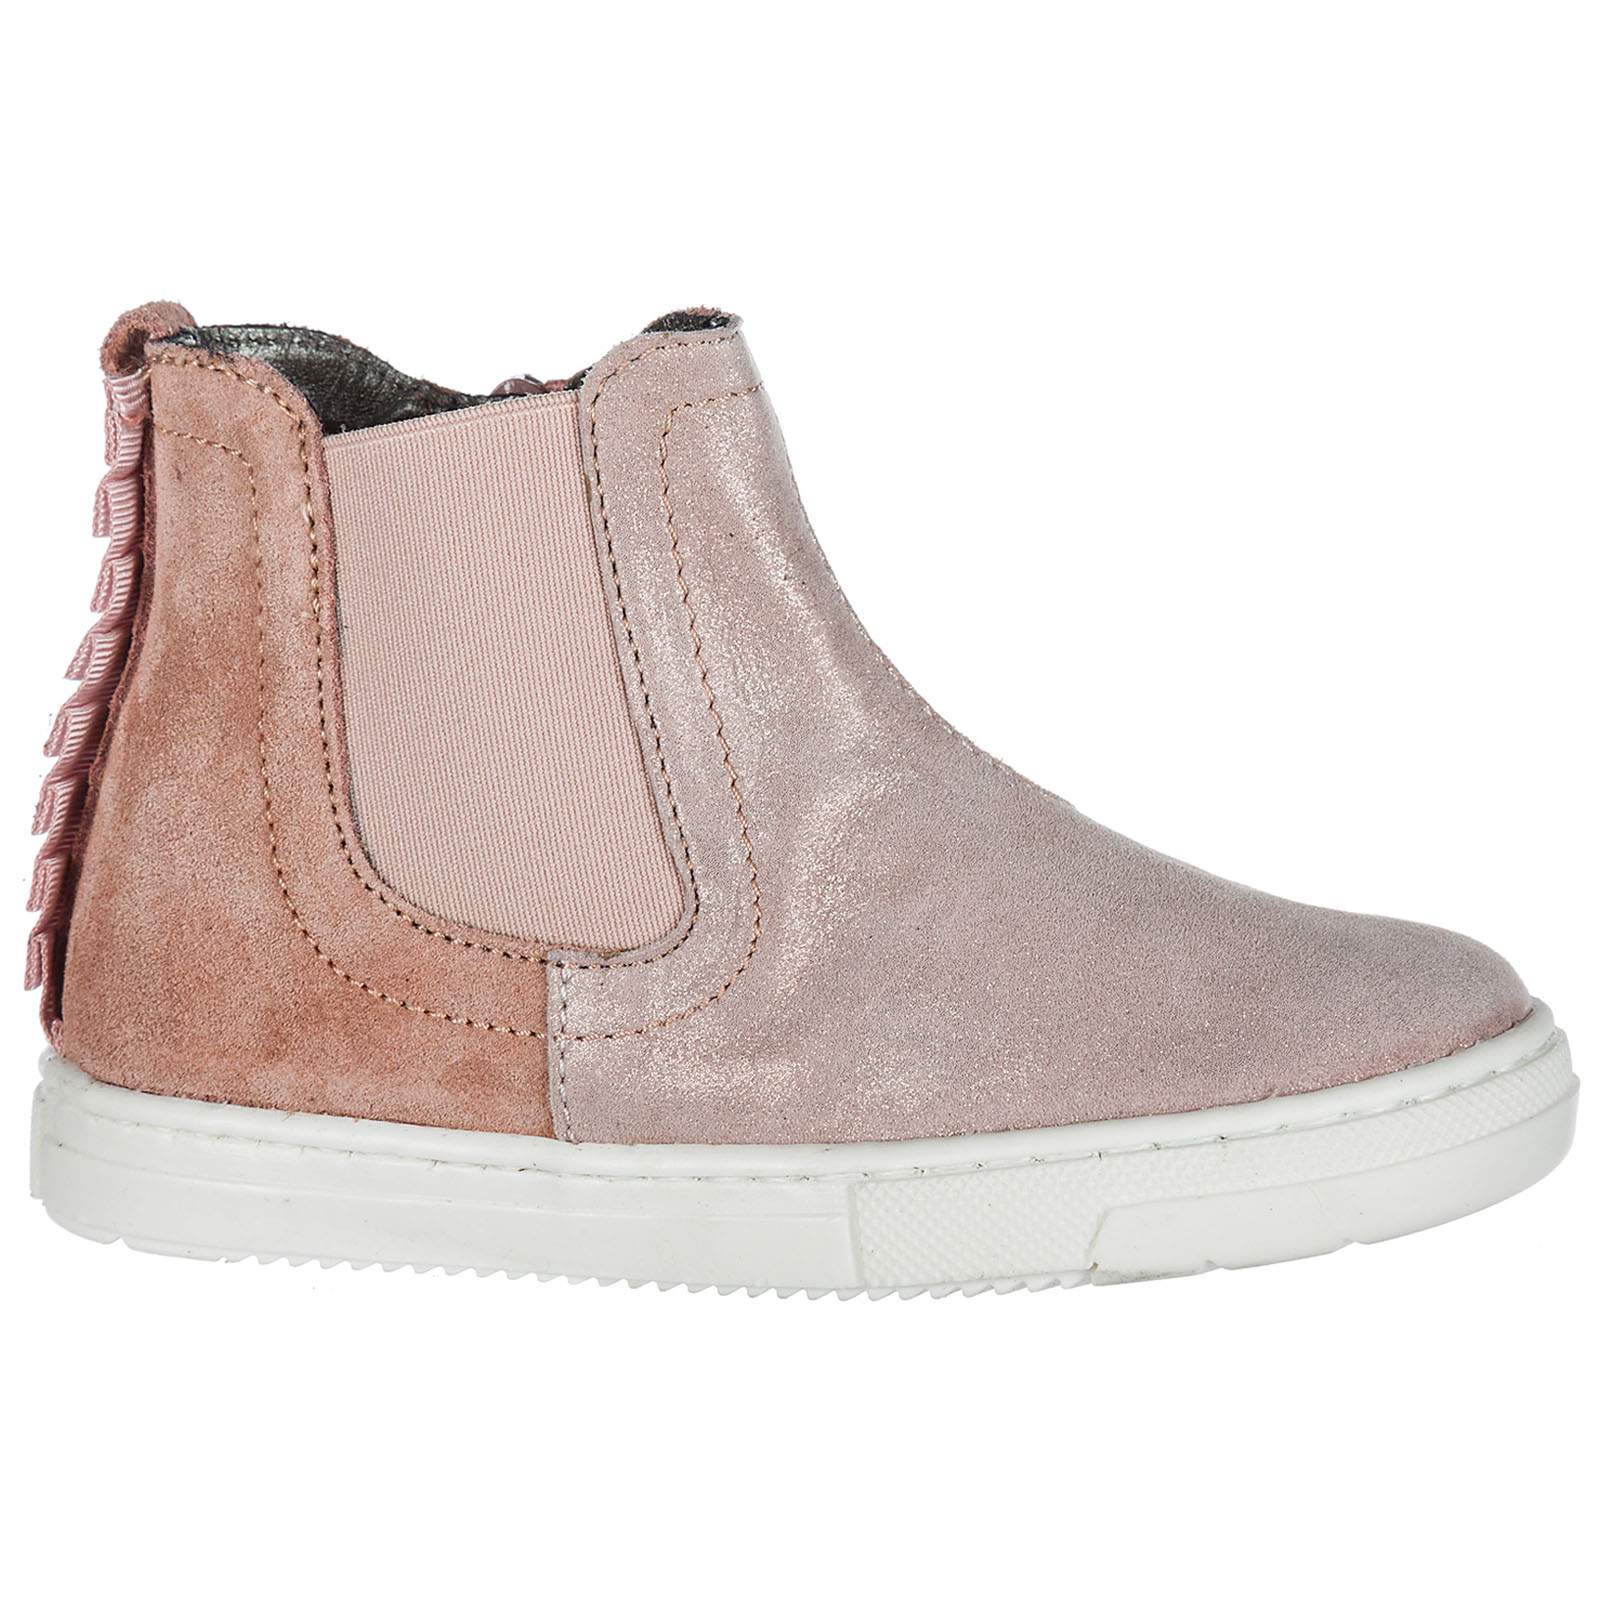 Girls shoes baby child boots suede leather j336